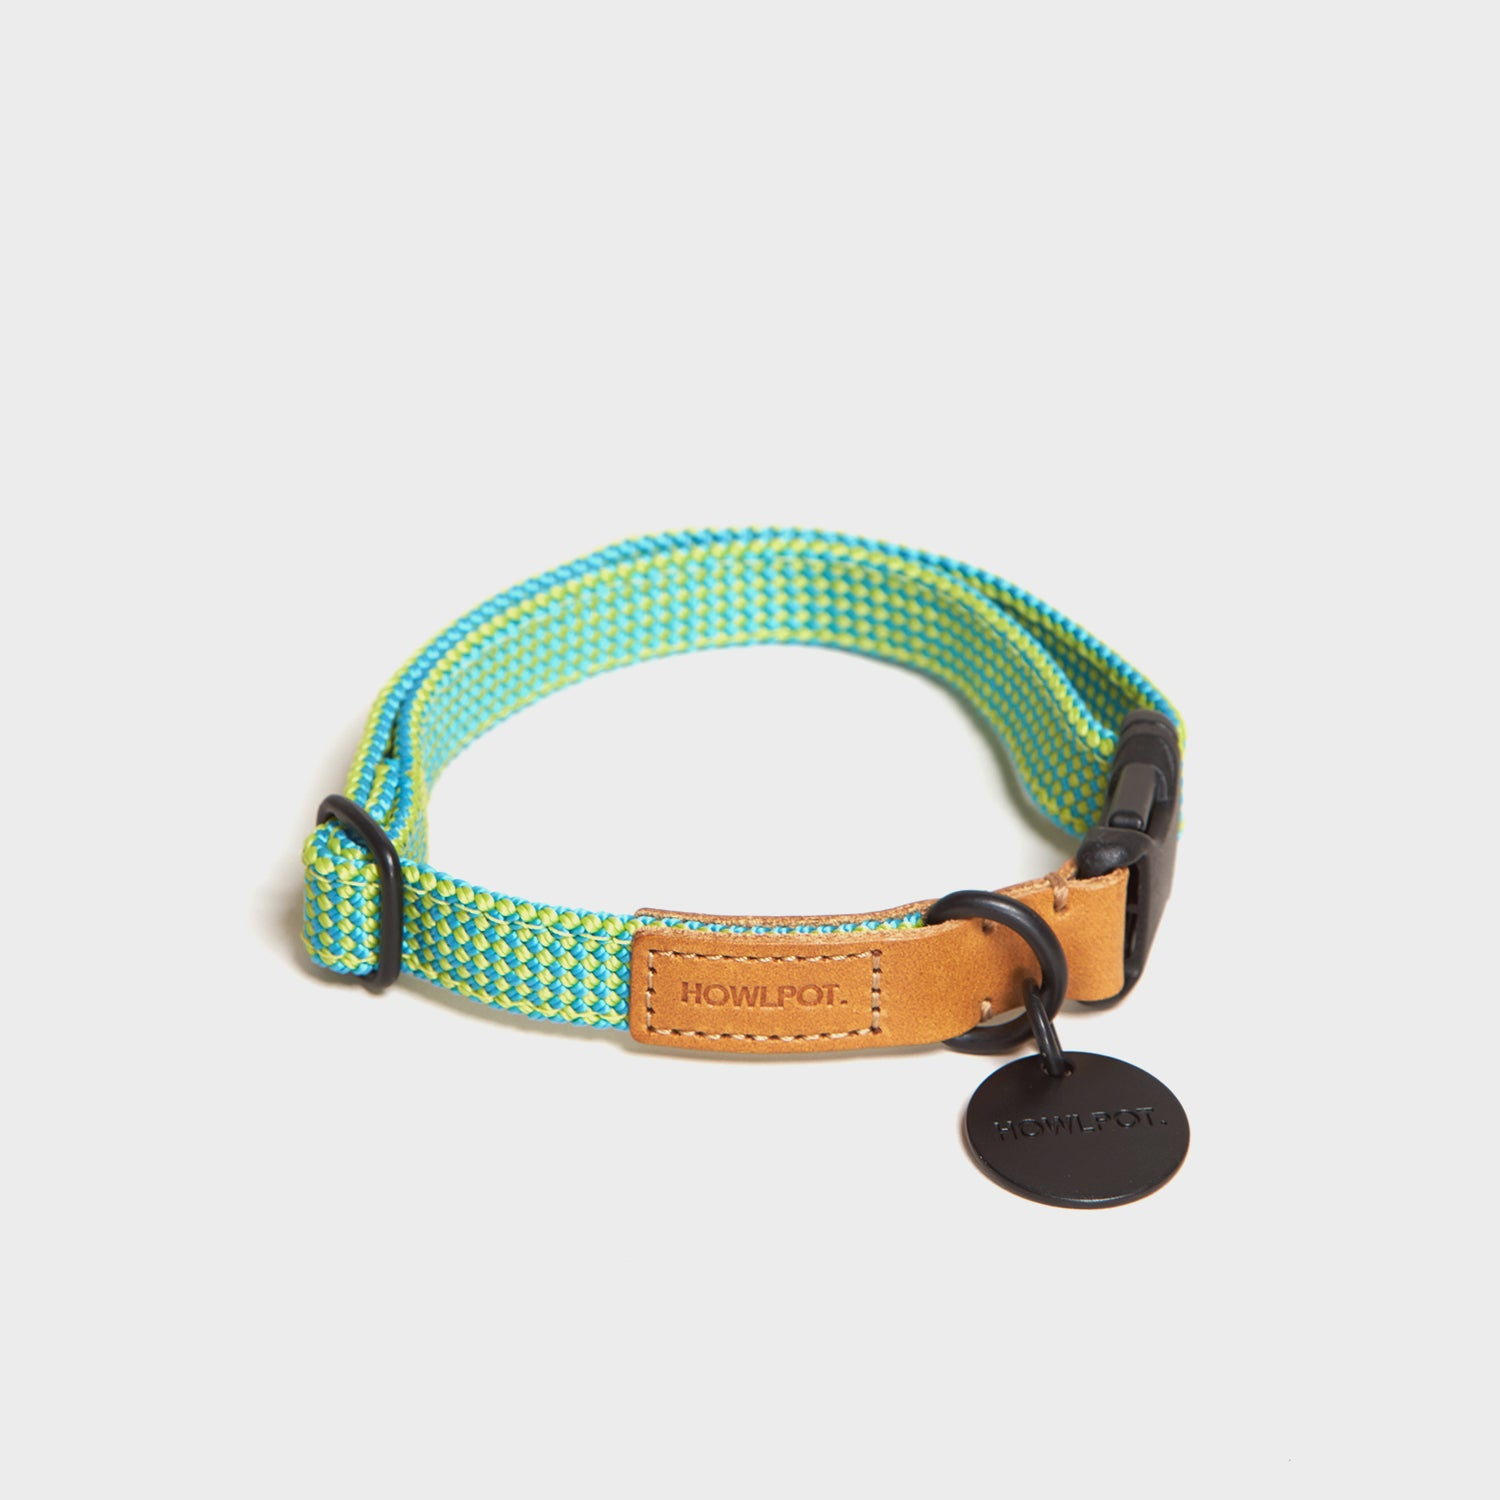 [Howlpot] We Are Tight Ribbon Collar - Palm Tree